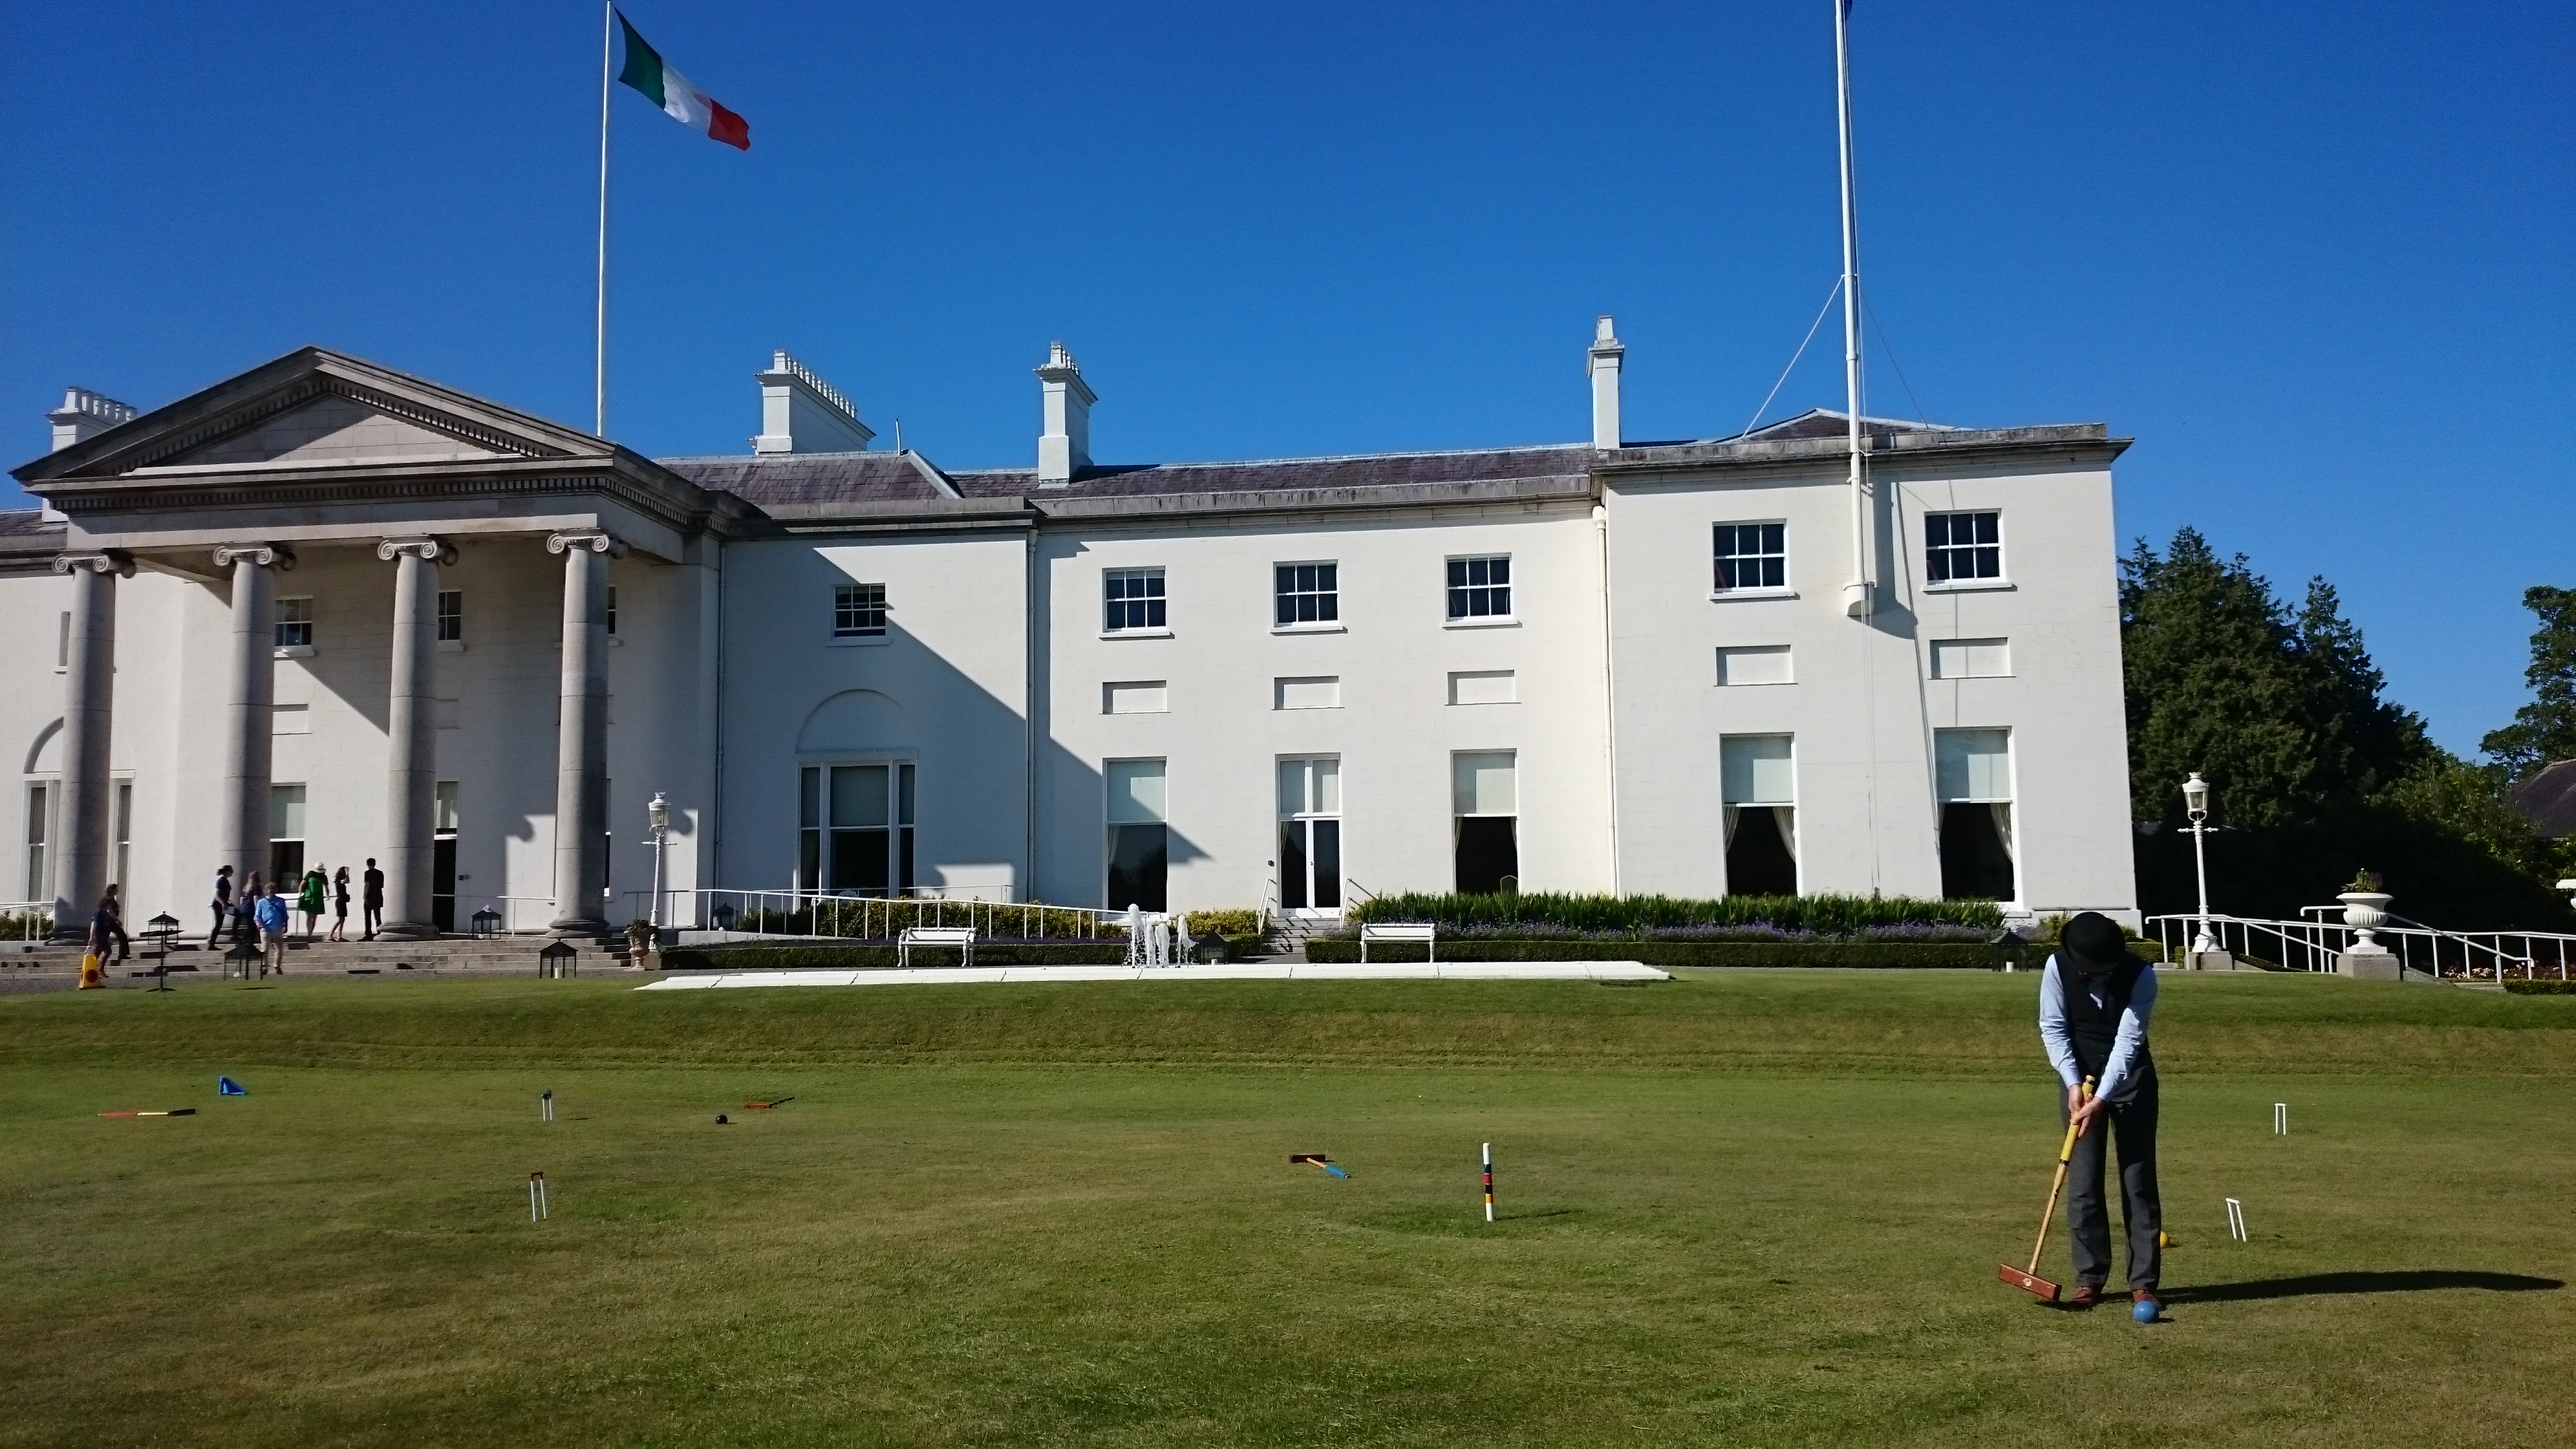 Niall playing croquet on the lawn of Áras an Uachtaráin Bloomsday 2017